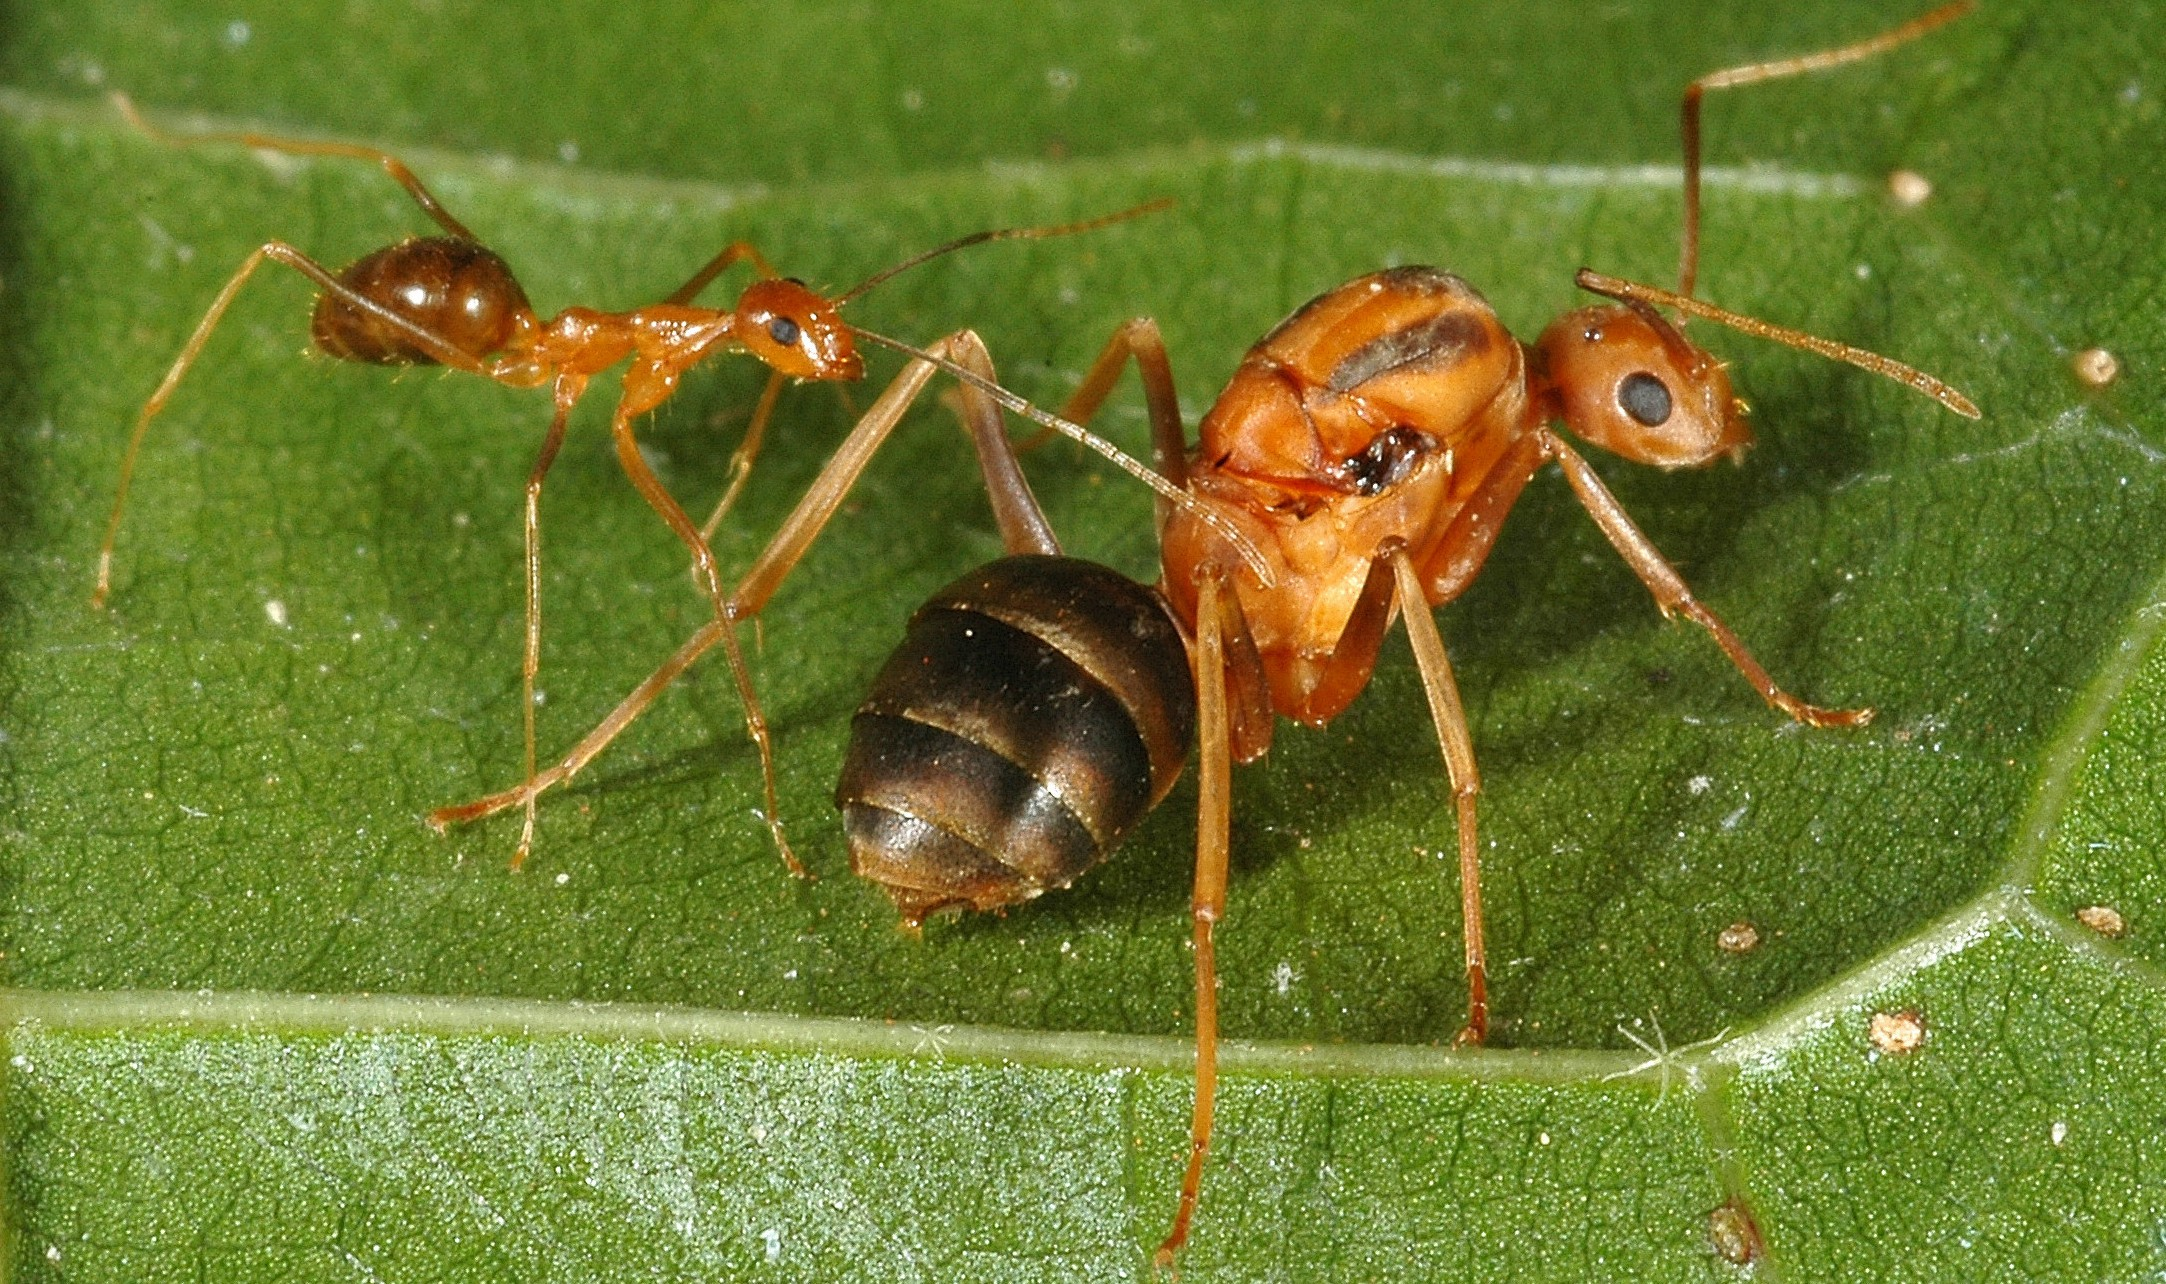 A worker (left) and queen (right) yellow crazy ant.